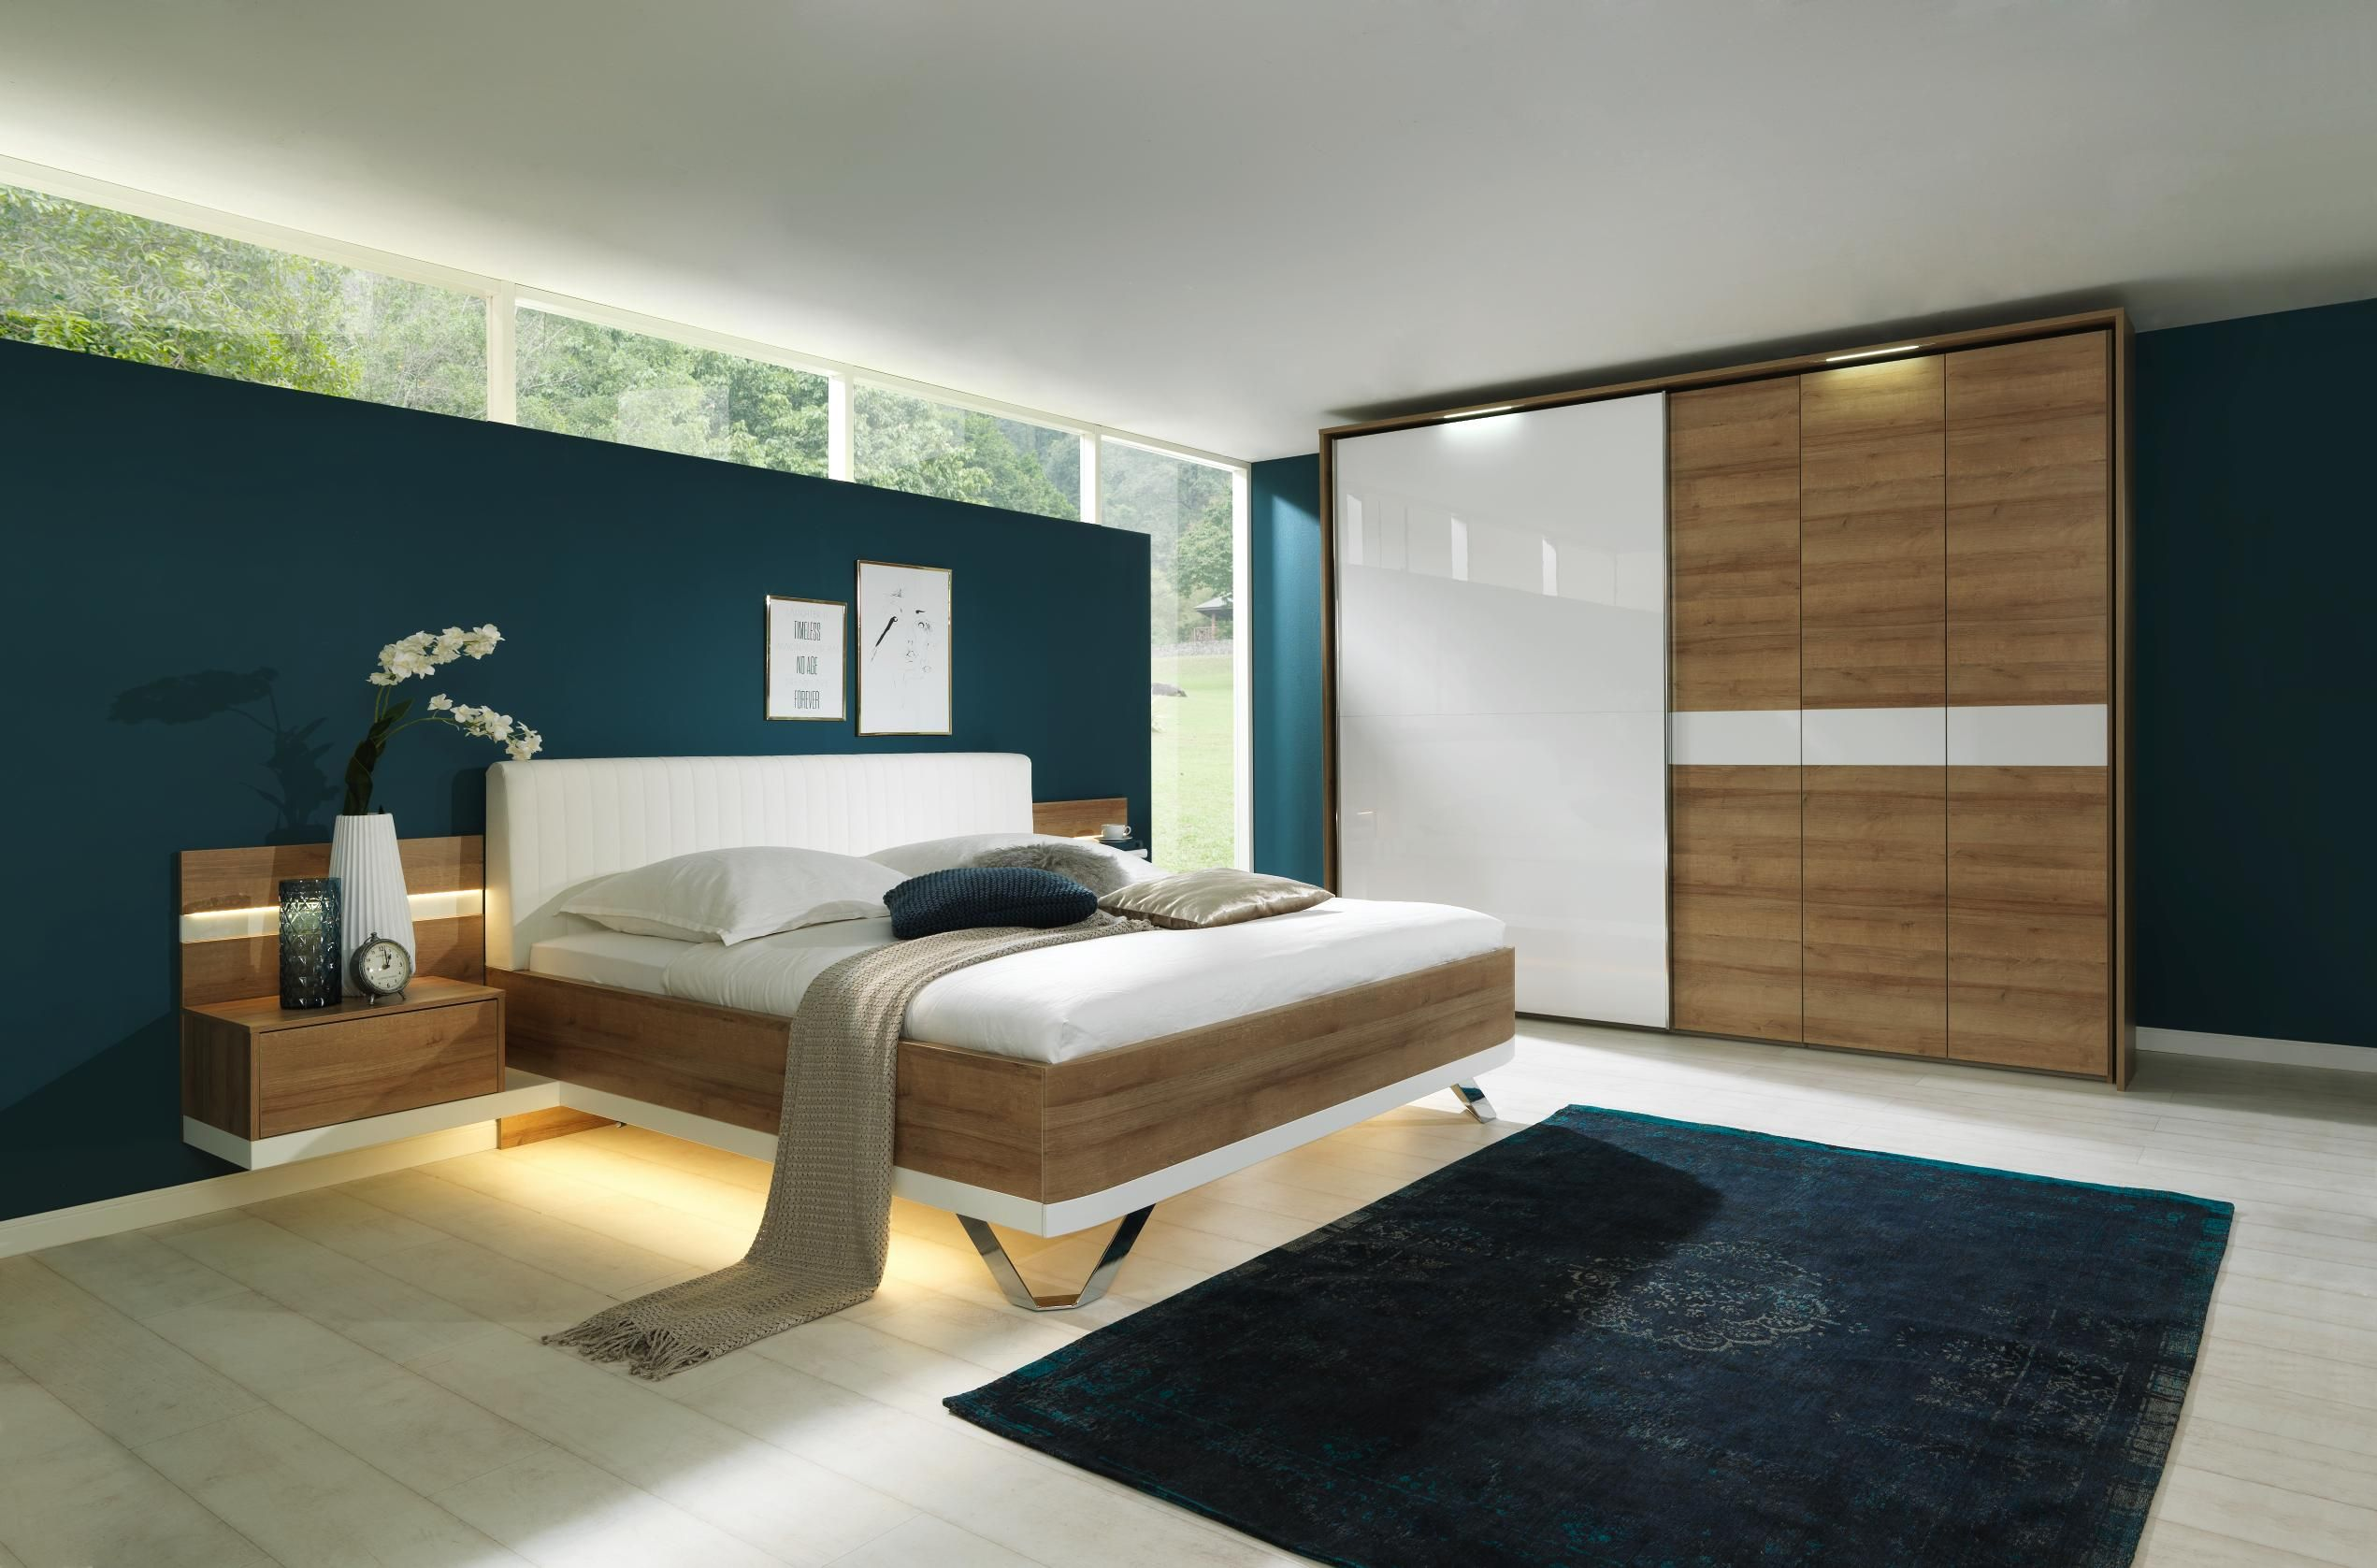 modernes schlafzimmer von dieter knoll in eichefarben und wei schlafzimmer pinterest. Black Bedroom Furniture Sets. Home Design Ideas